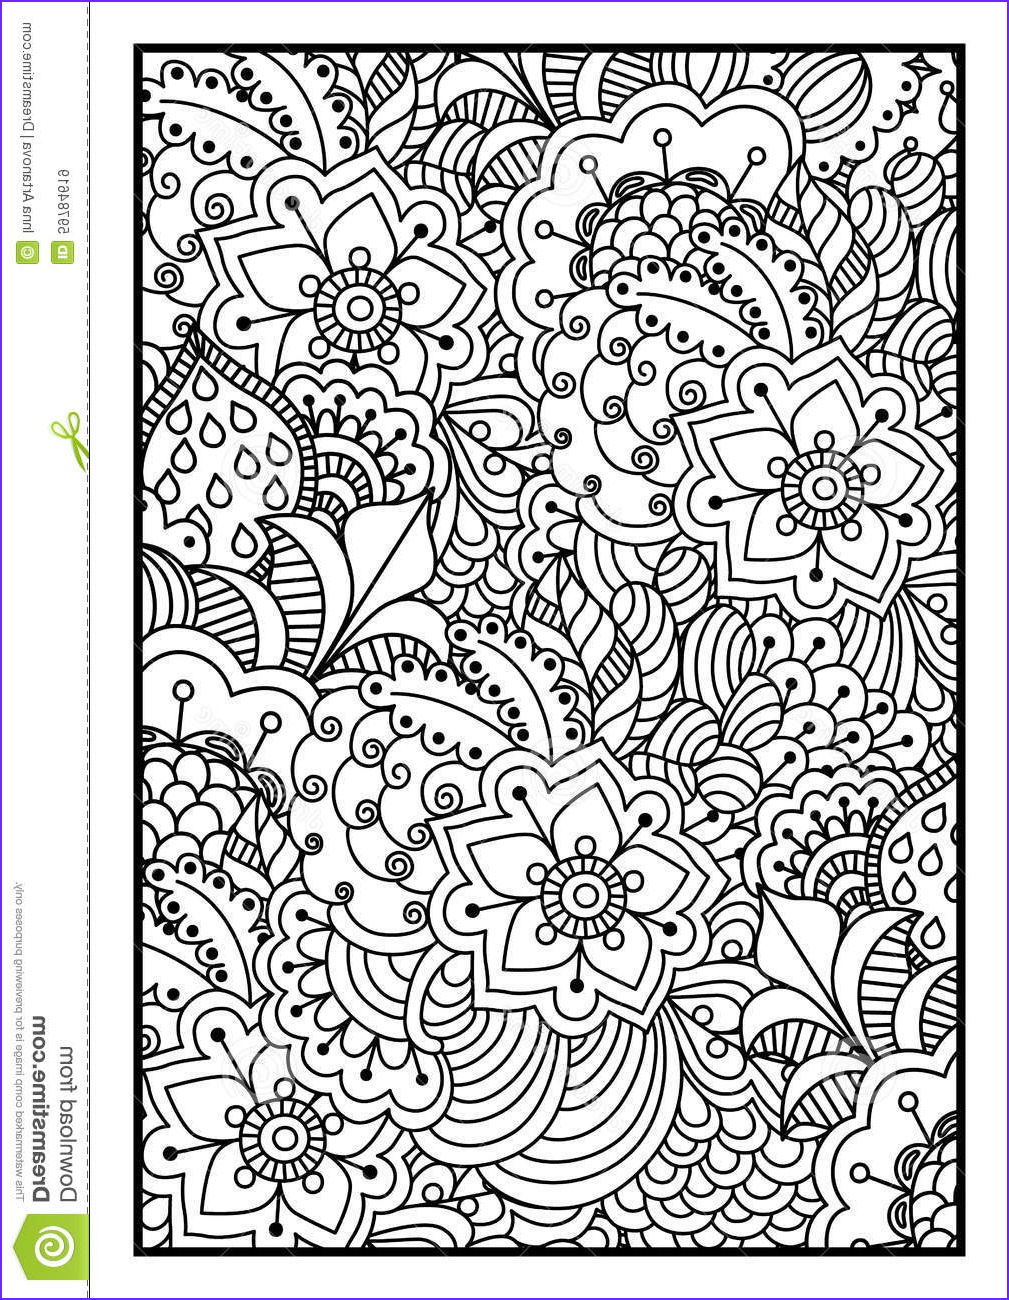 stock illustration black white background coloring book floral ethnic hand drawn elements design good adults design wrapping image